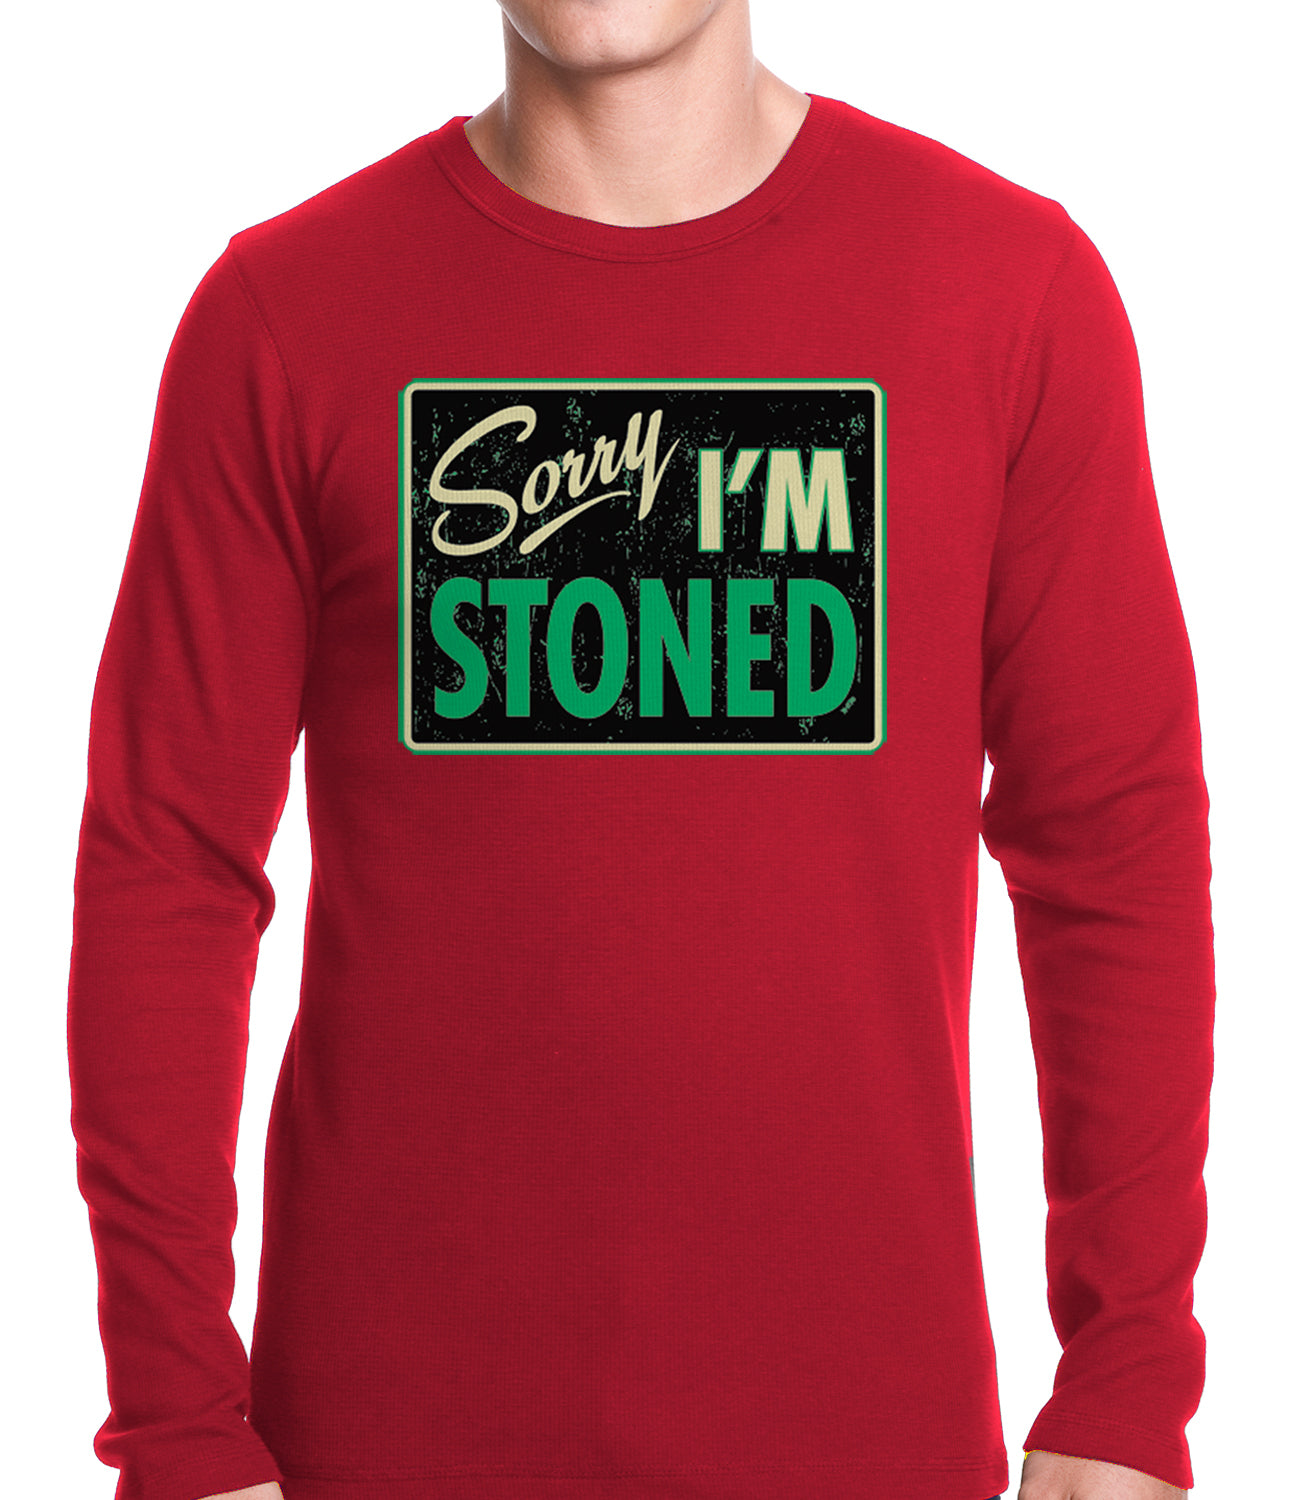 Sorry, I'm Stoned Thermal Shirt